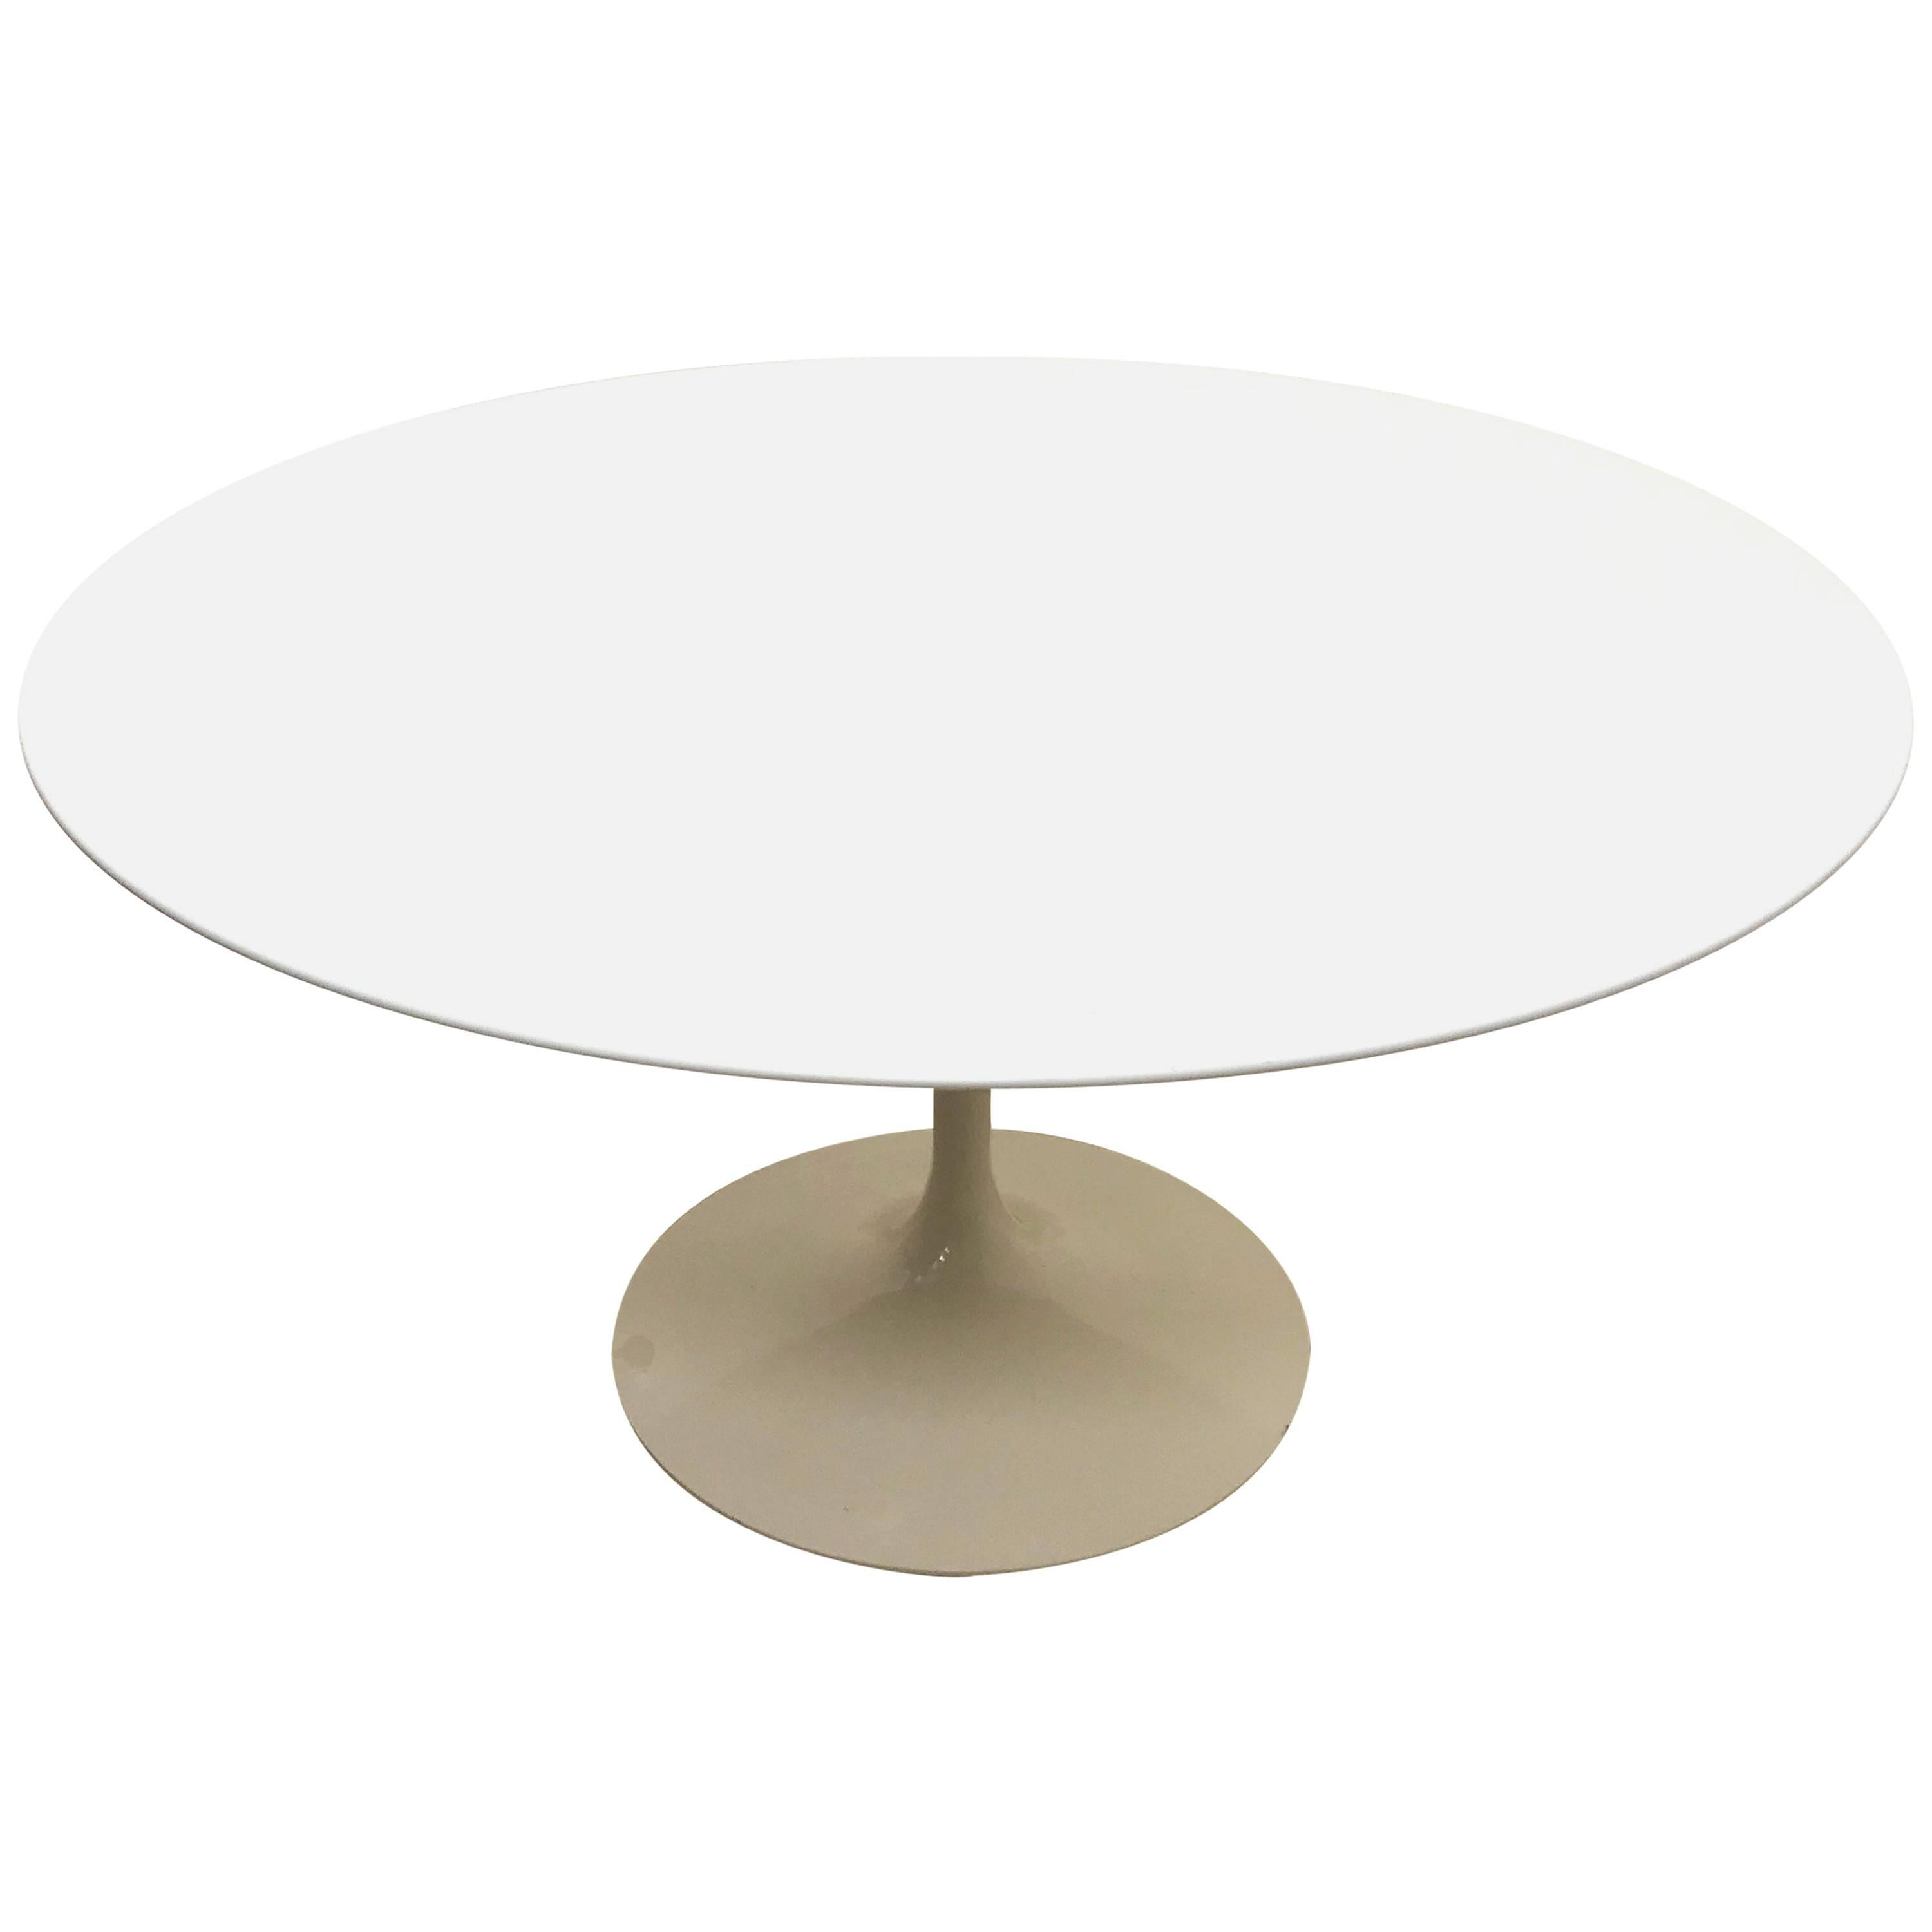 Original Tulip Table By Eero Saarinen Signed Knoll Studio, Round Table For  Sale